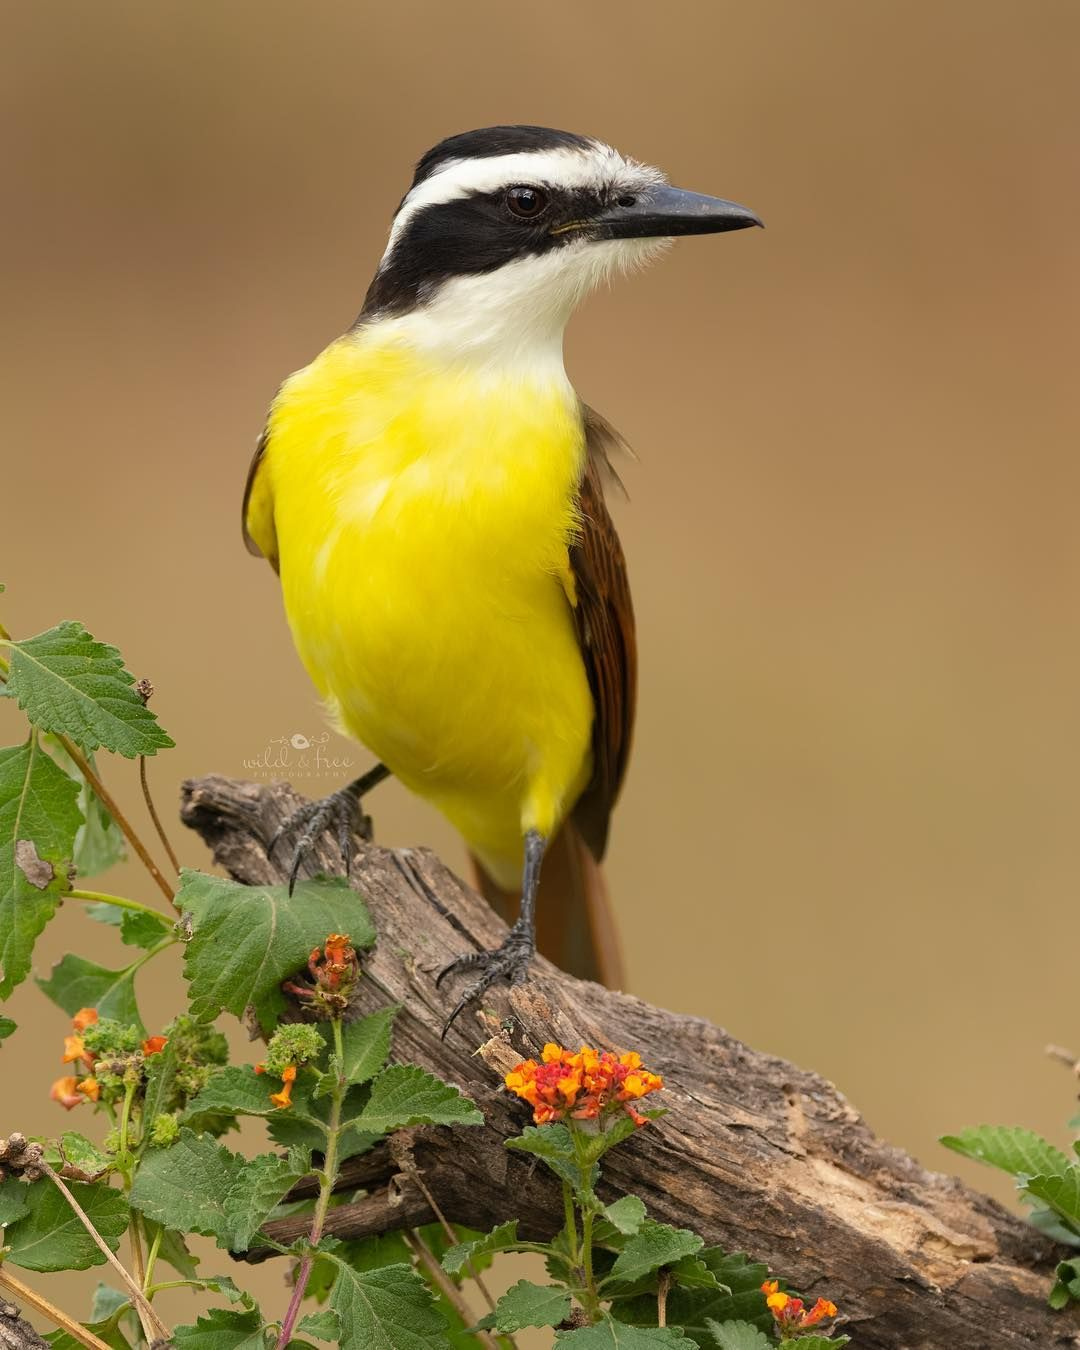 This Is A Greater Kiskadee From My Workshop With Alan Murphy